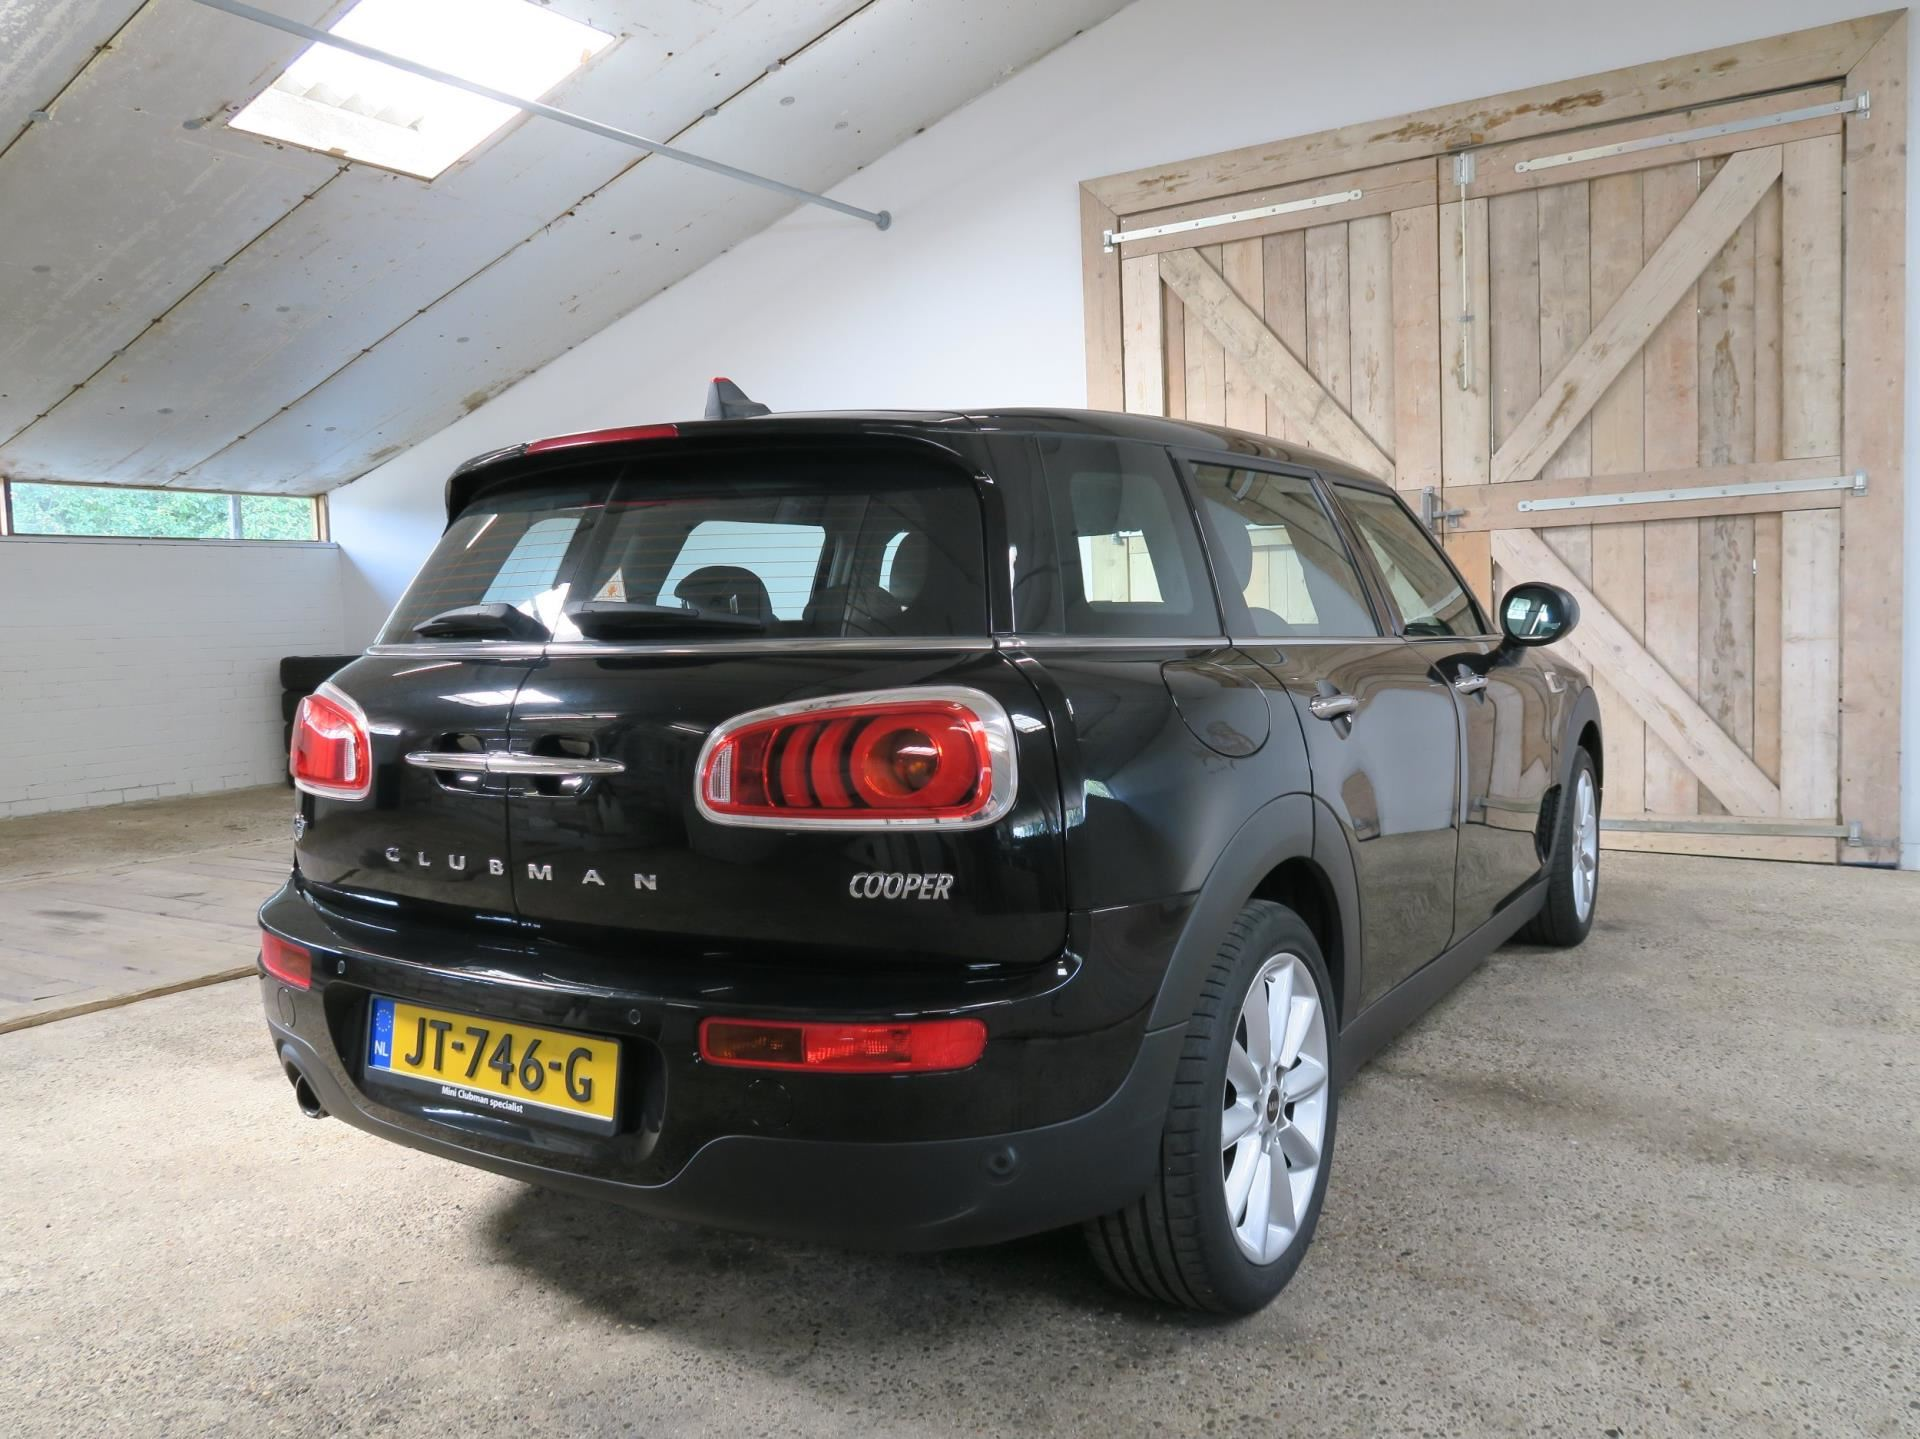 Mini Clubman 1.5 Cooper Navi Bluetooth Fulloption occasion - CherokeeLand.nl